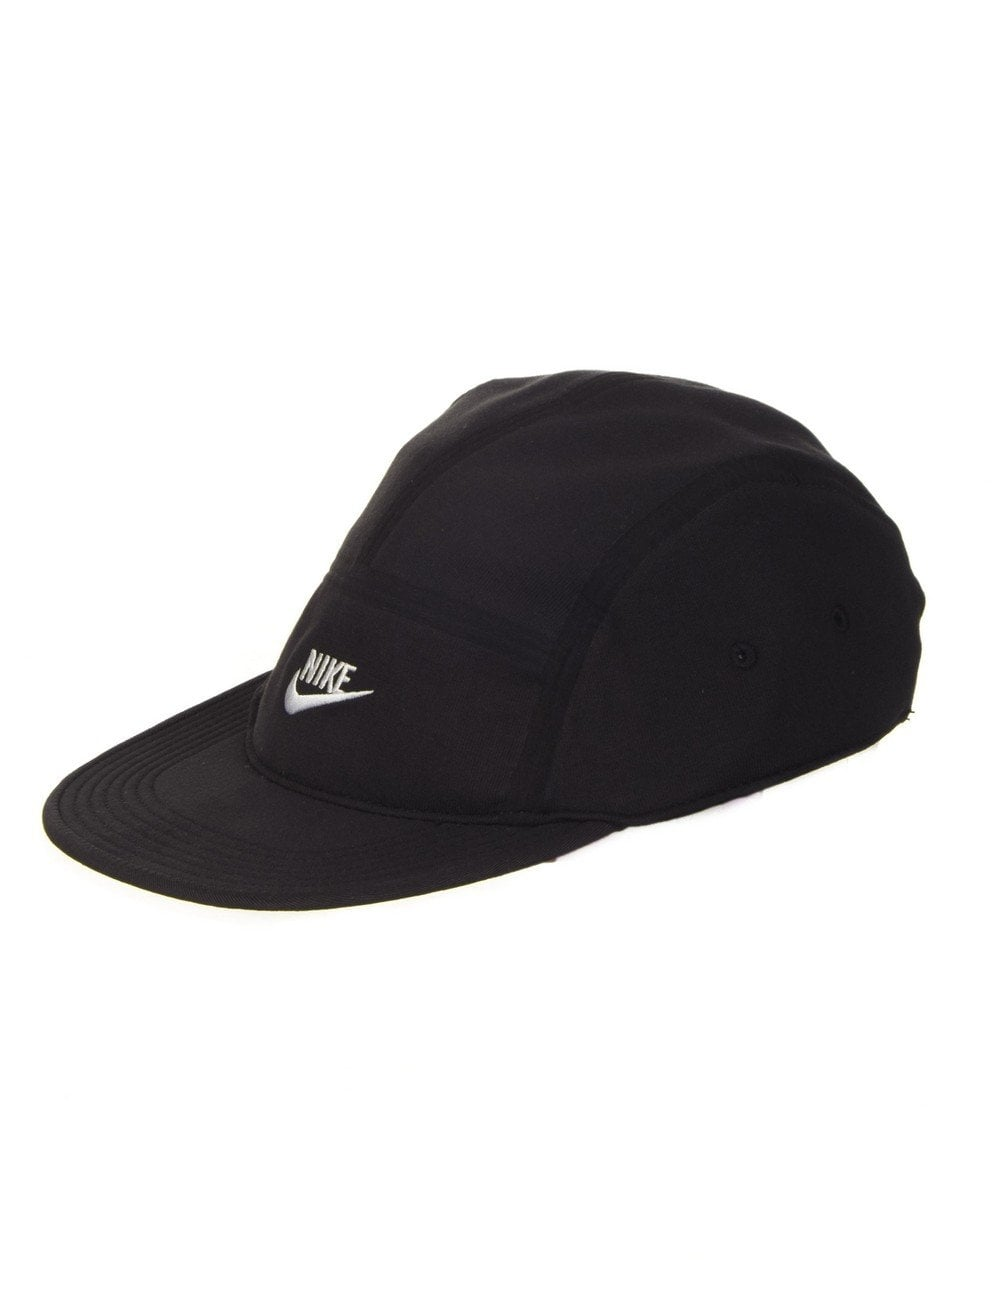 Nike AW84 Tech 5 Panel Hat - Black - Accessories from Fat Buddha ... 321eb8363e4